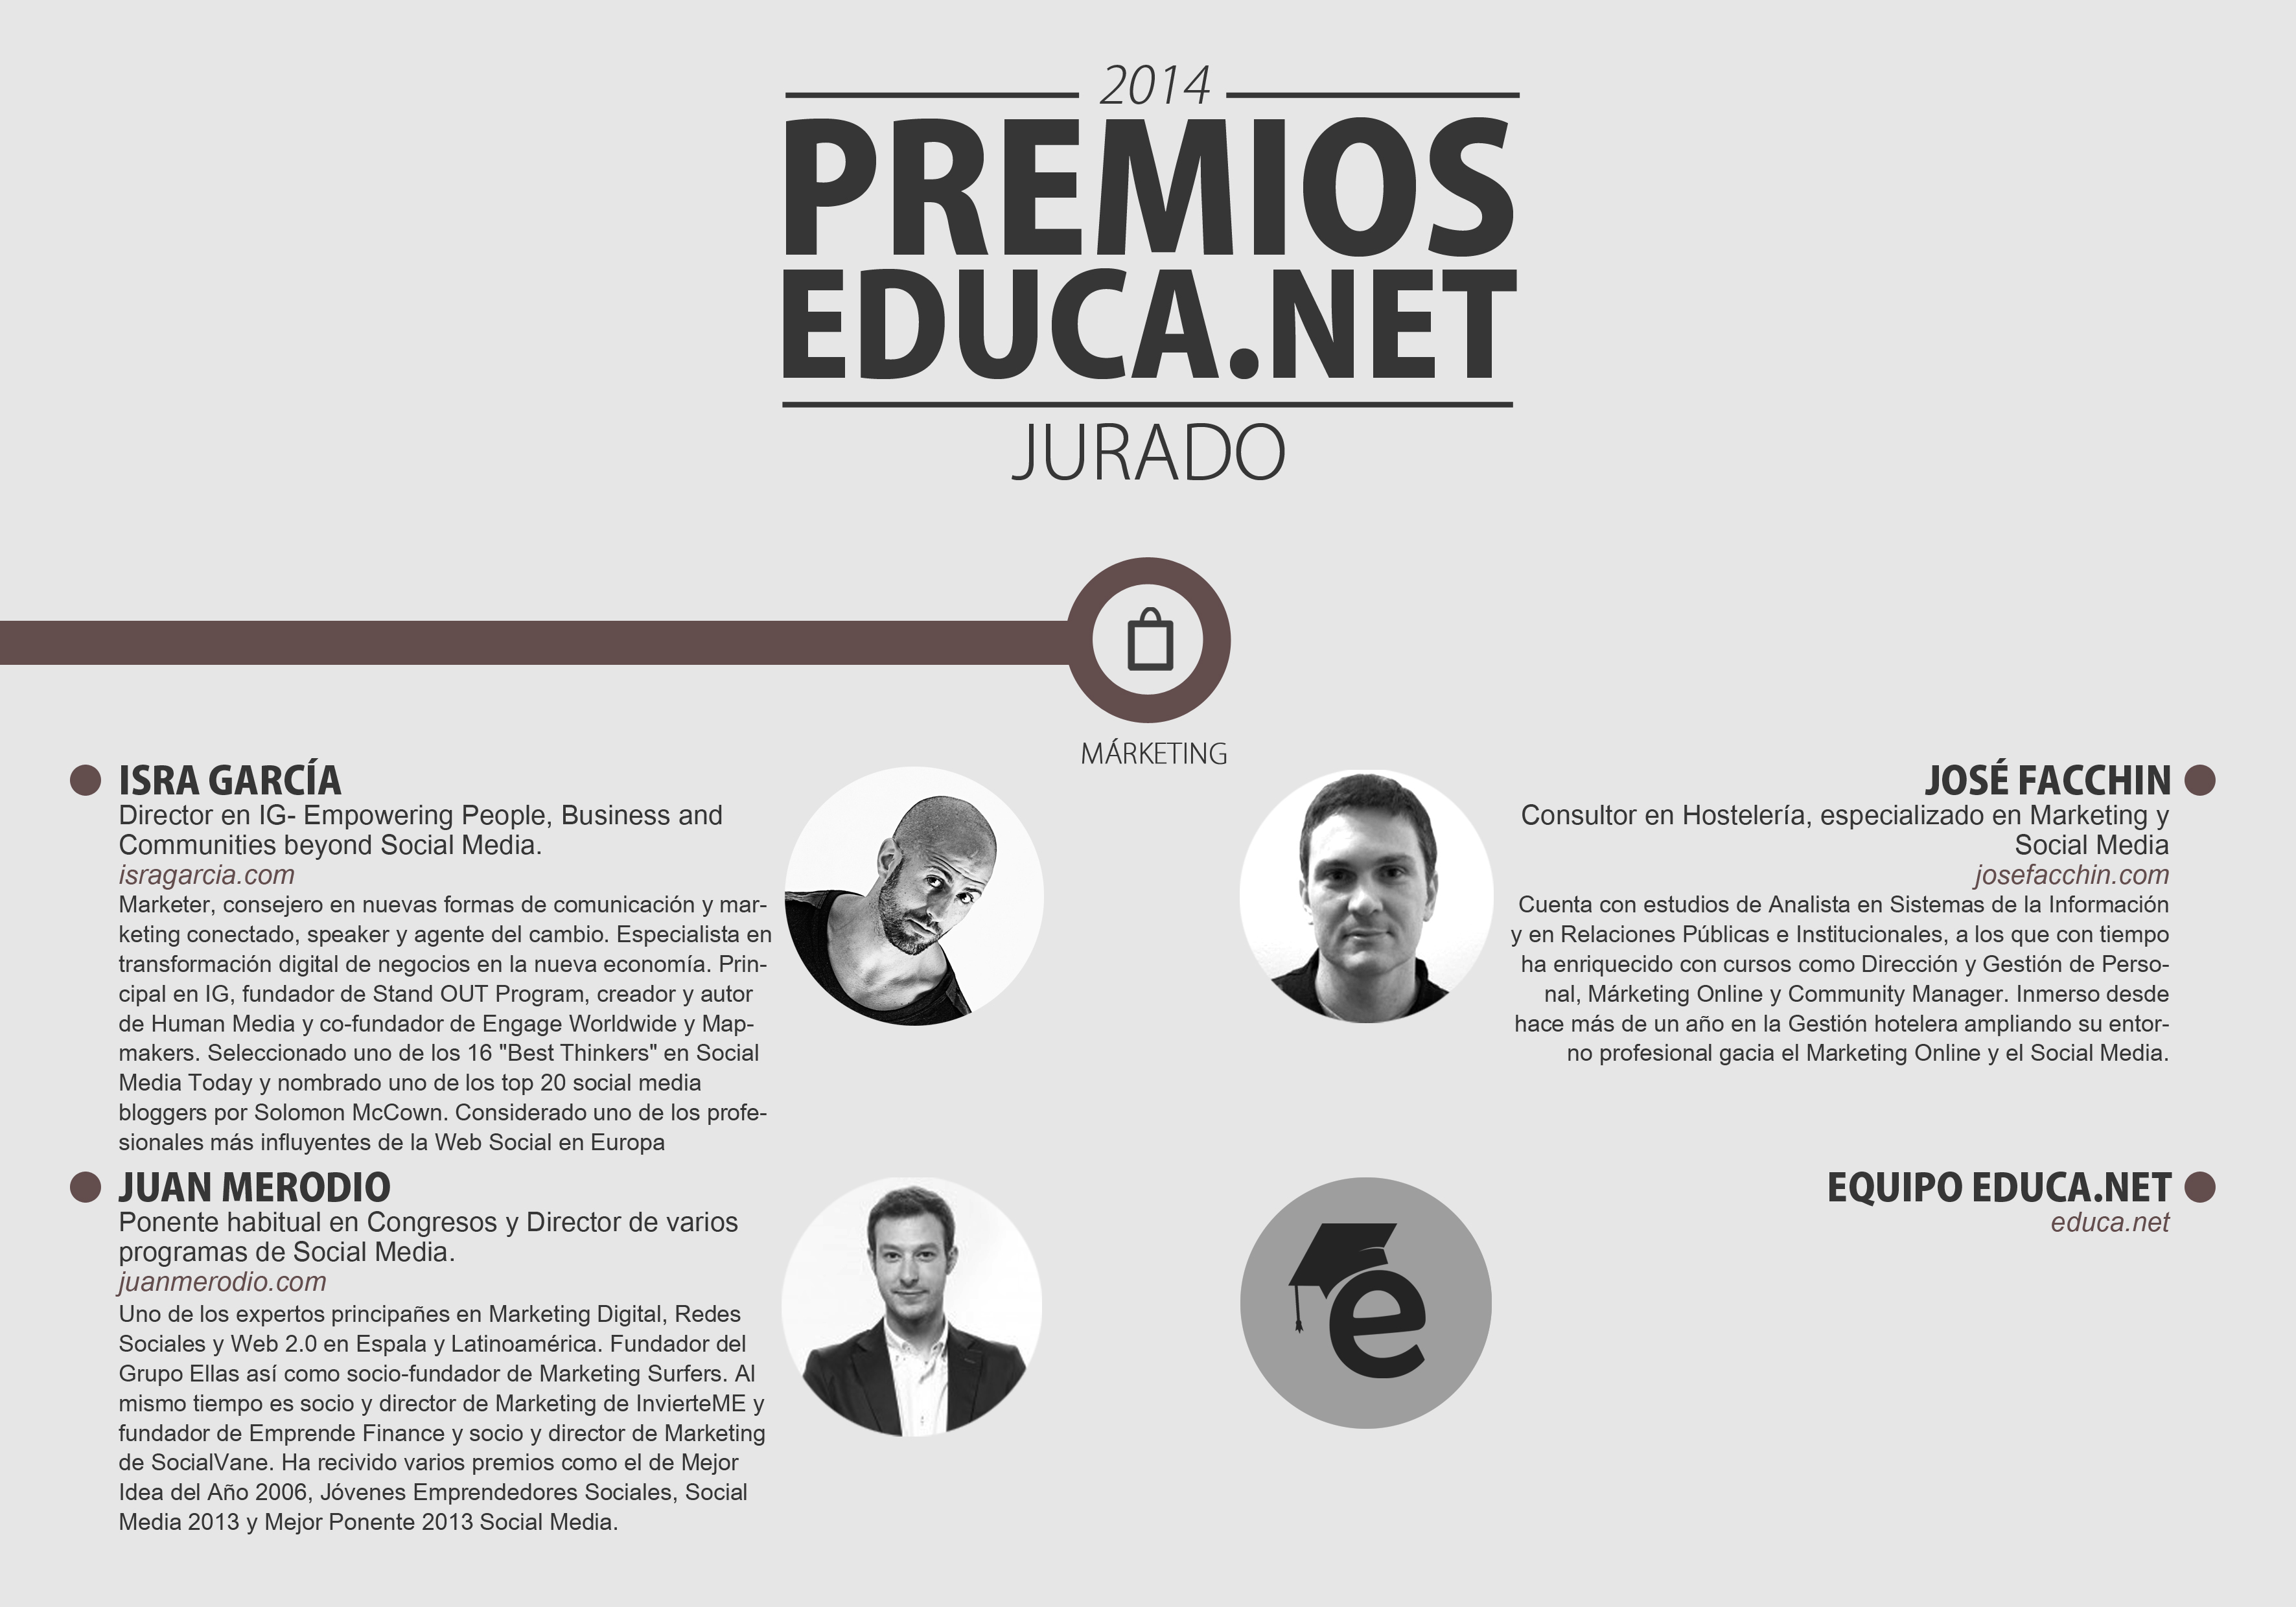 Jurado Marketing Premios Educa.net